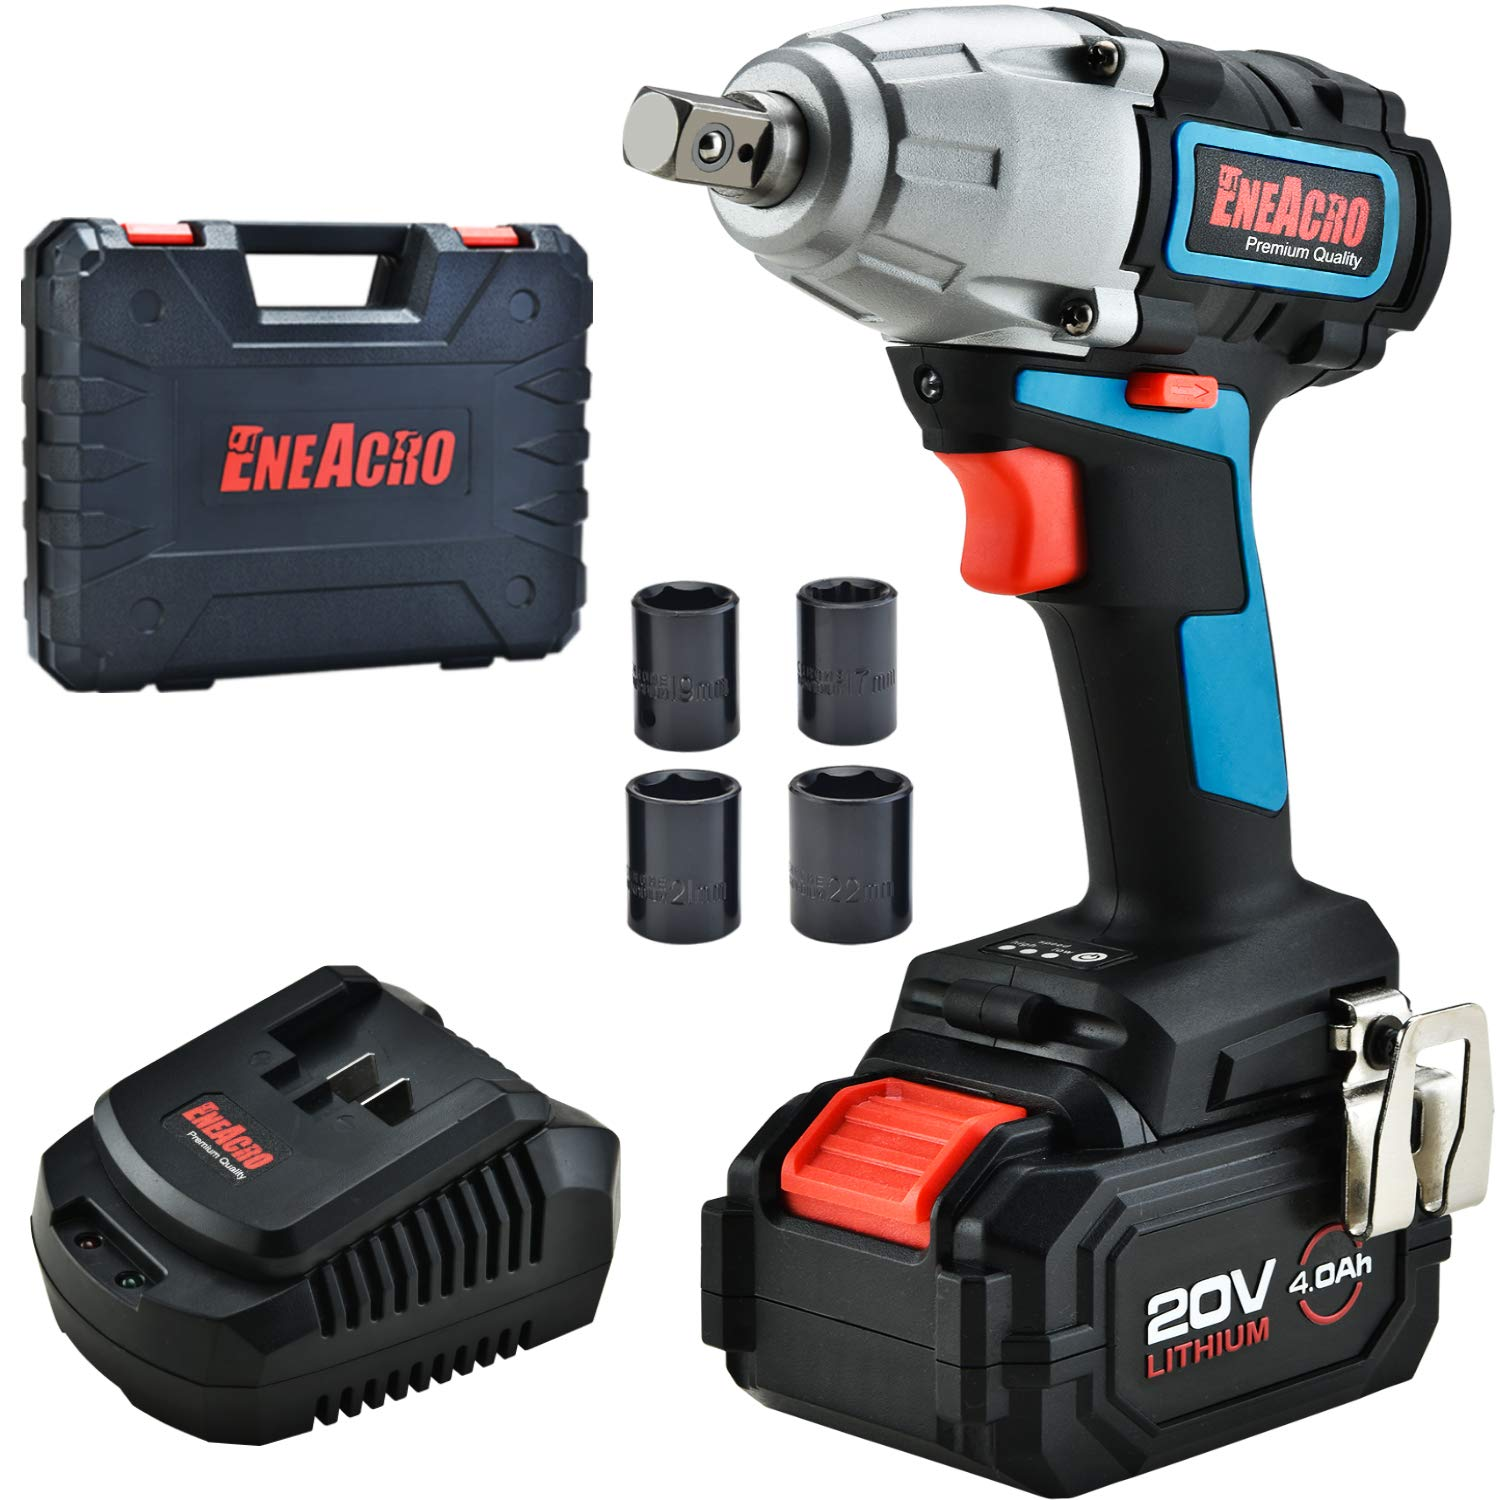 ENEACRO 20V Cordless Impact Wrench Brushless Motor 300 Ft-lb Max Torque